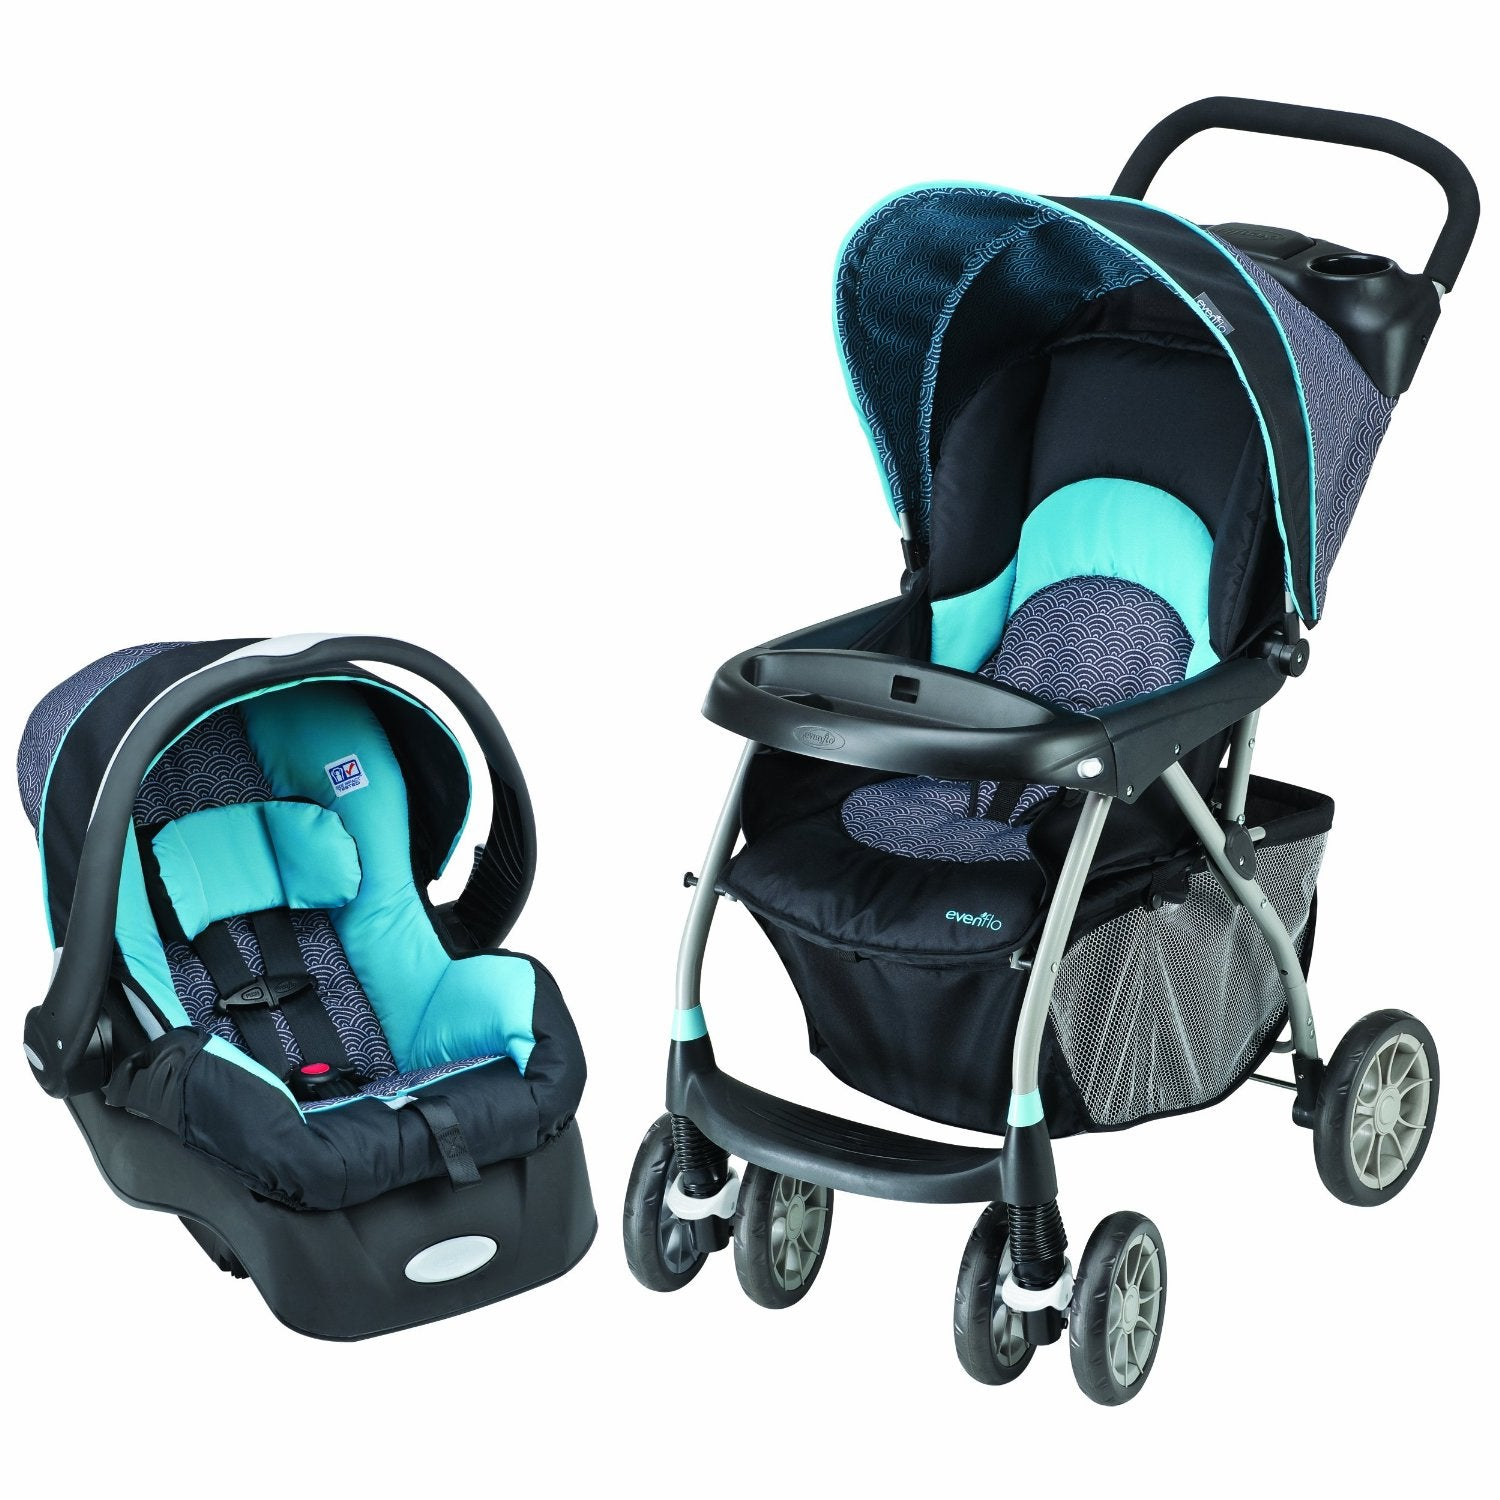 Stroller, Baby Car Seats Buy Car Stroller